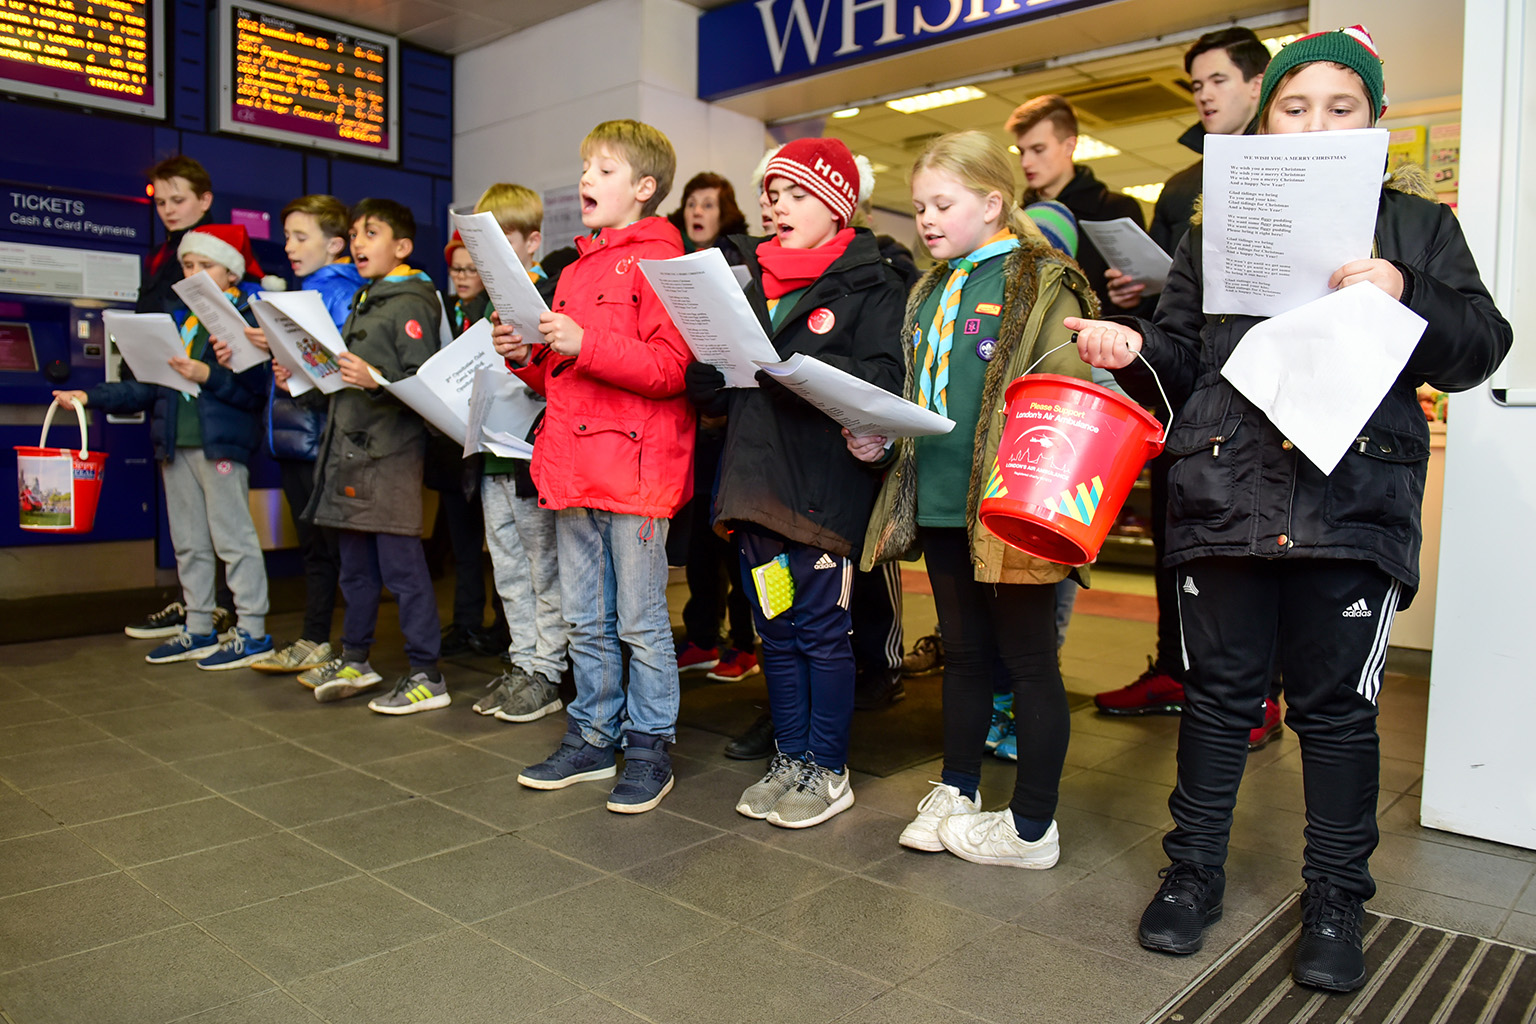 Carol Singing for London's Air Ambulance